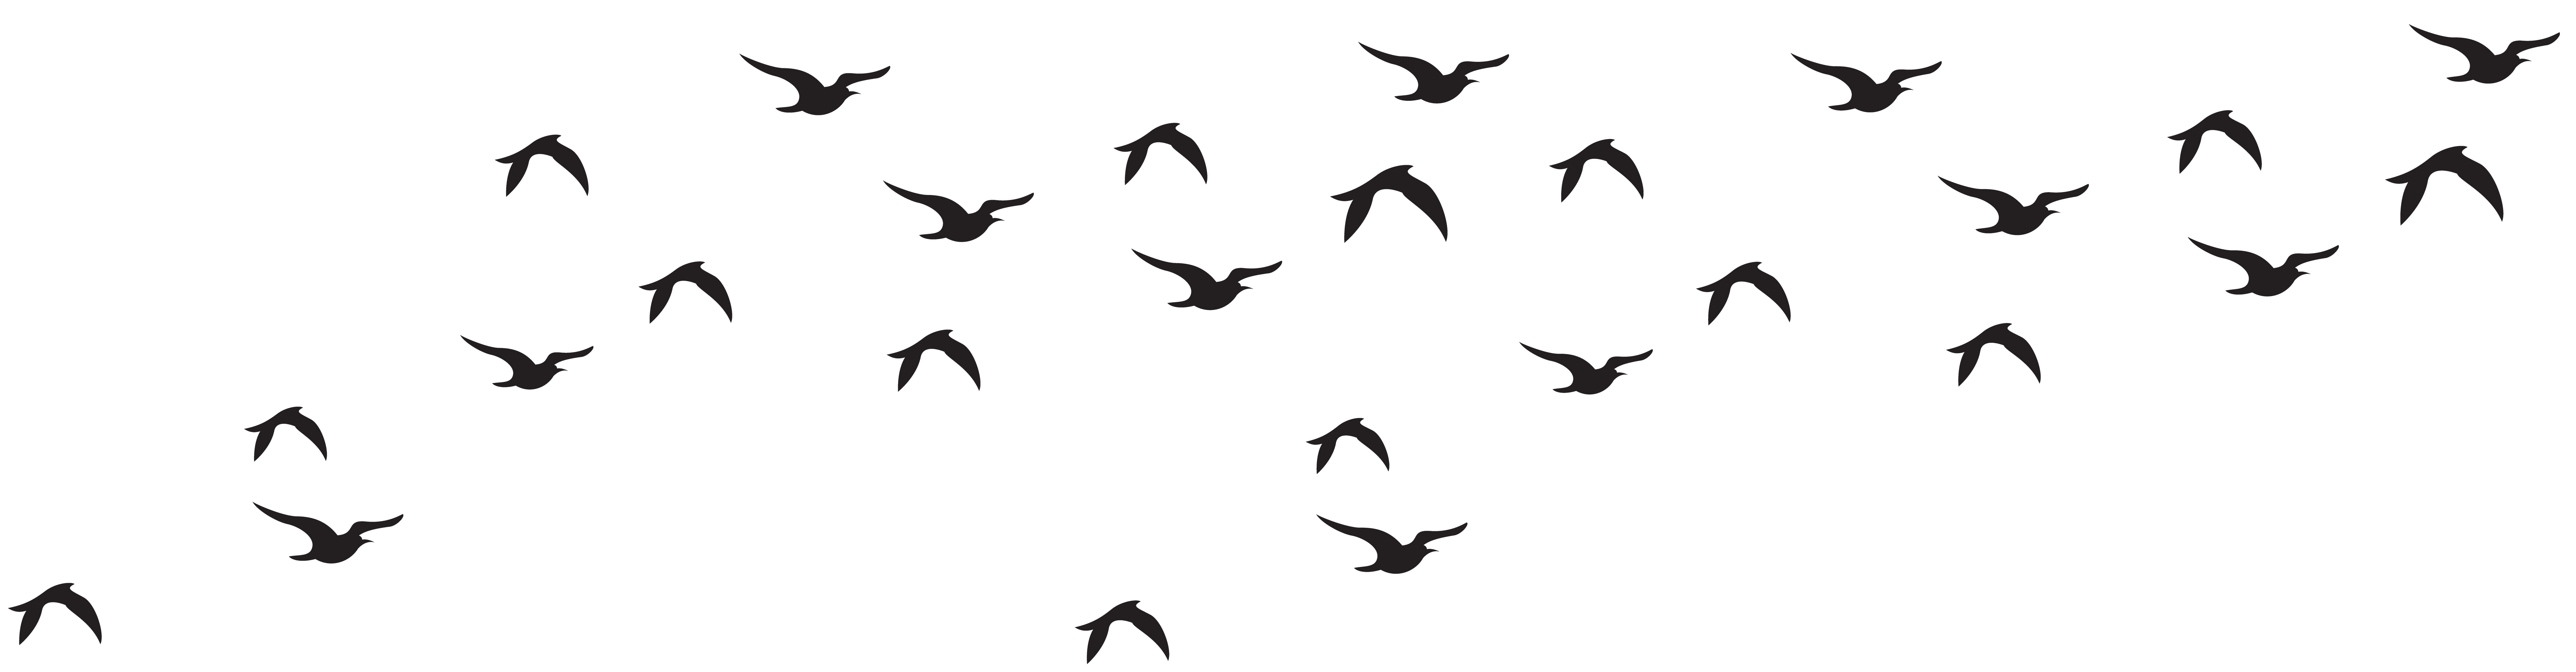 8000x2087 Collection Of Free Birds Vector Background. Download On Ubisafe